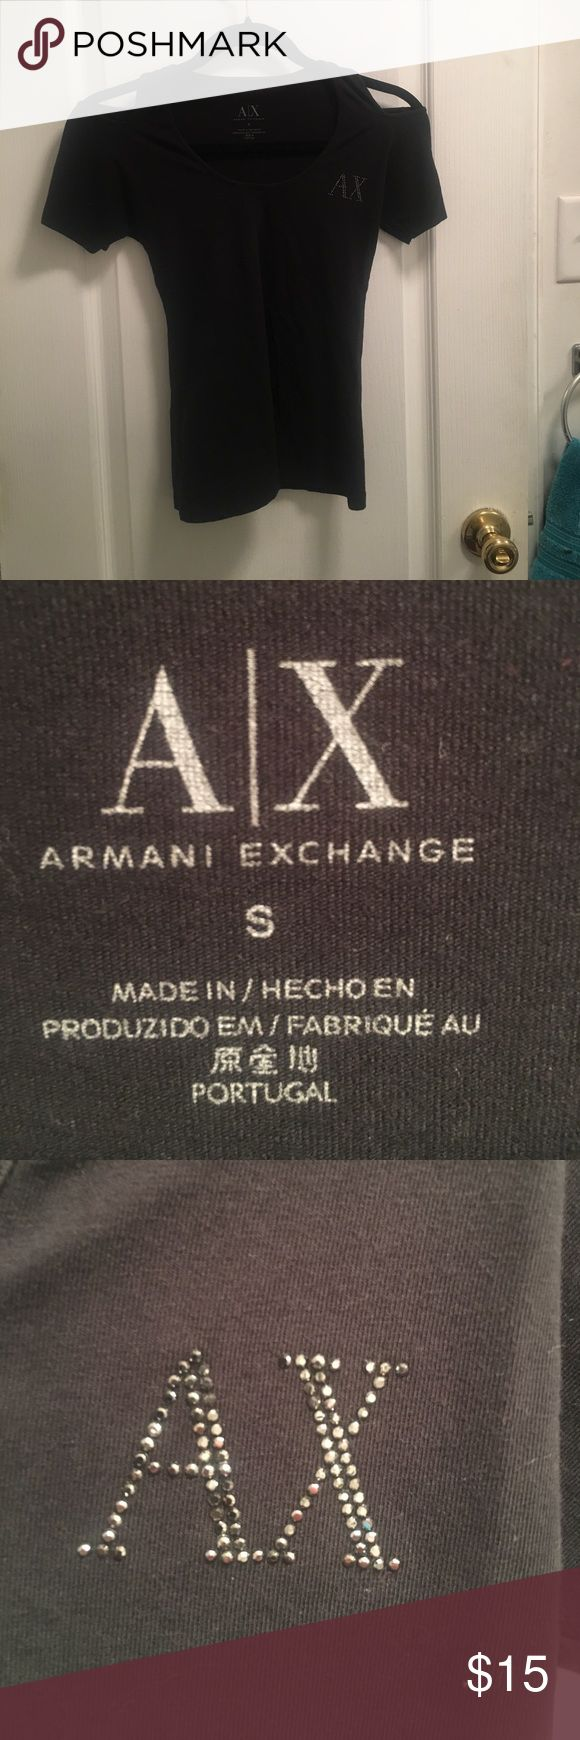 Armani Exchange shirt A small black Armani exchange shirt. Tight fit. Great condition! A/X Armani Exchange Tops Tees - Short Sleeve